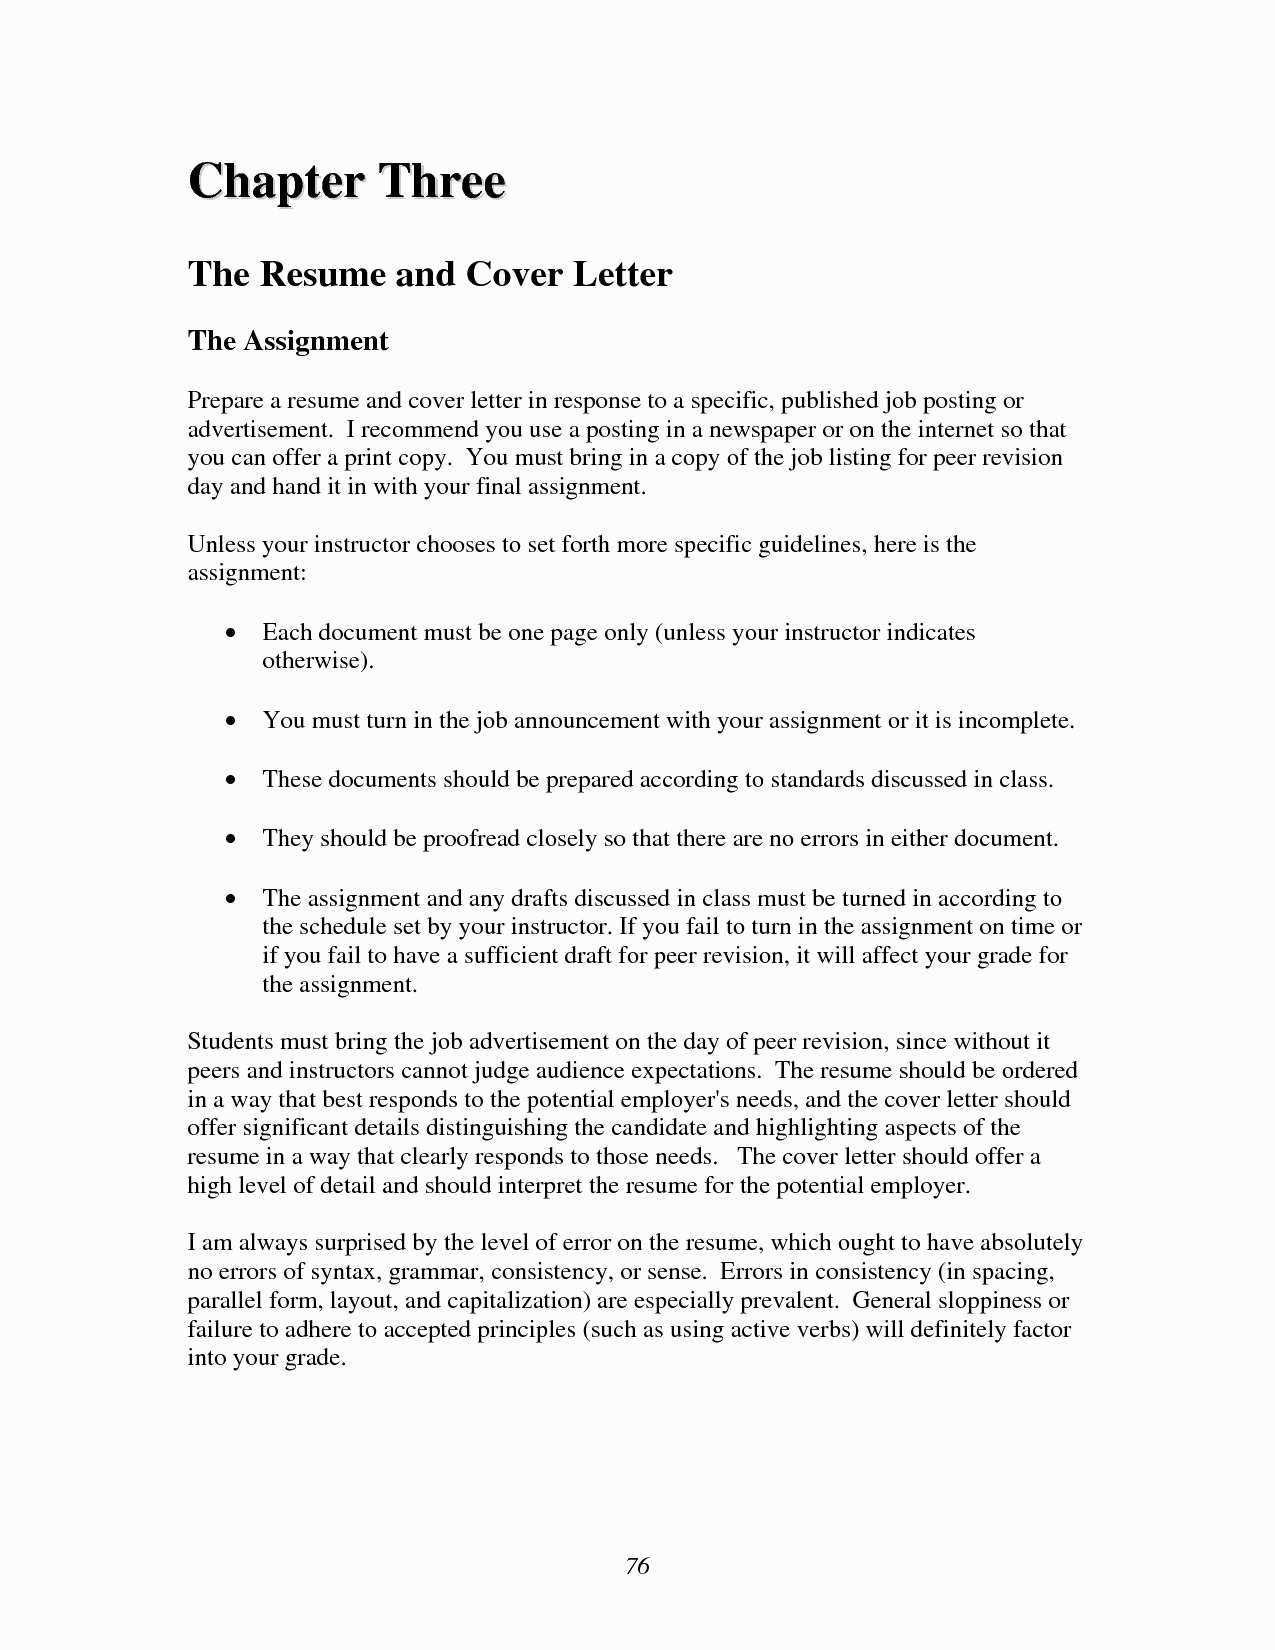 Pre Hire Letter Template - Sample Cover Letter for A Job New Job Fer Letter Template Us Copy